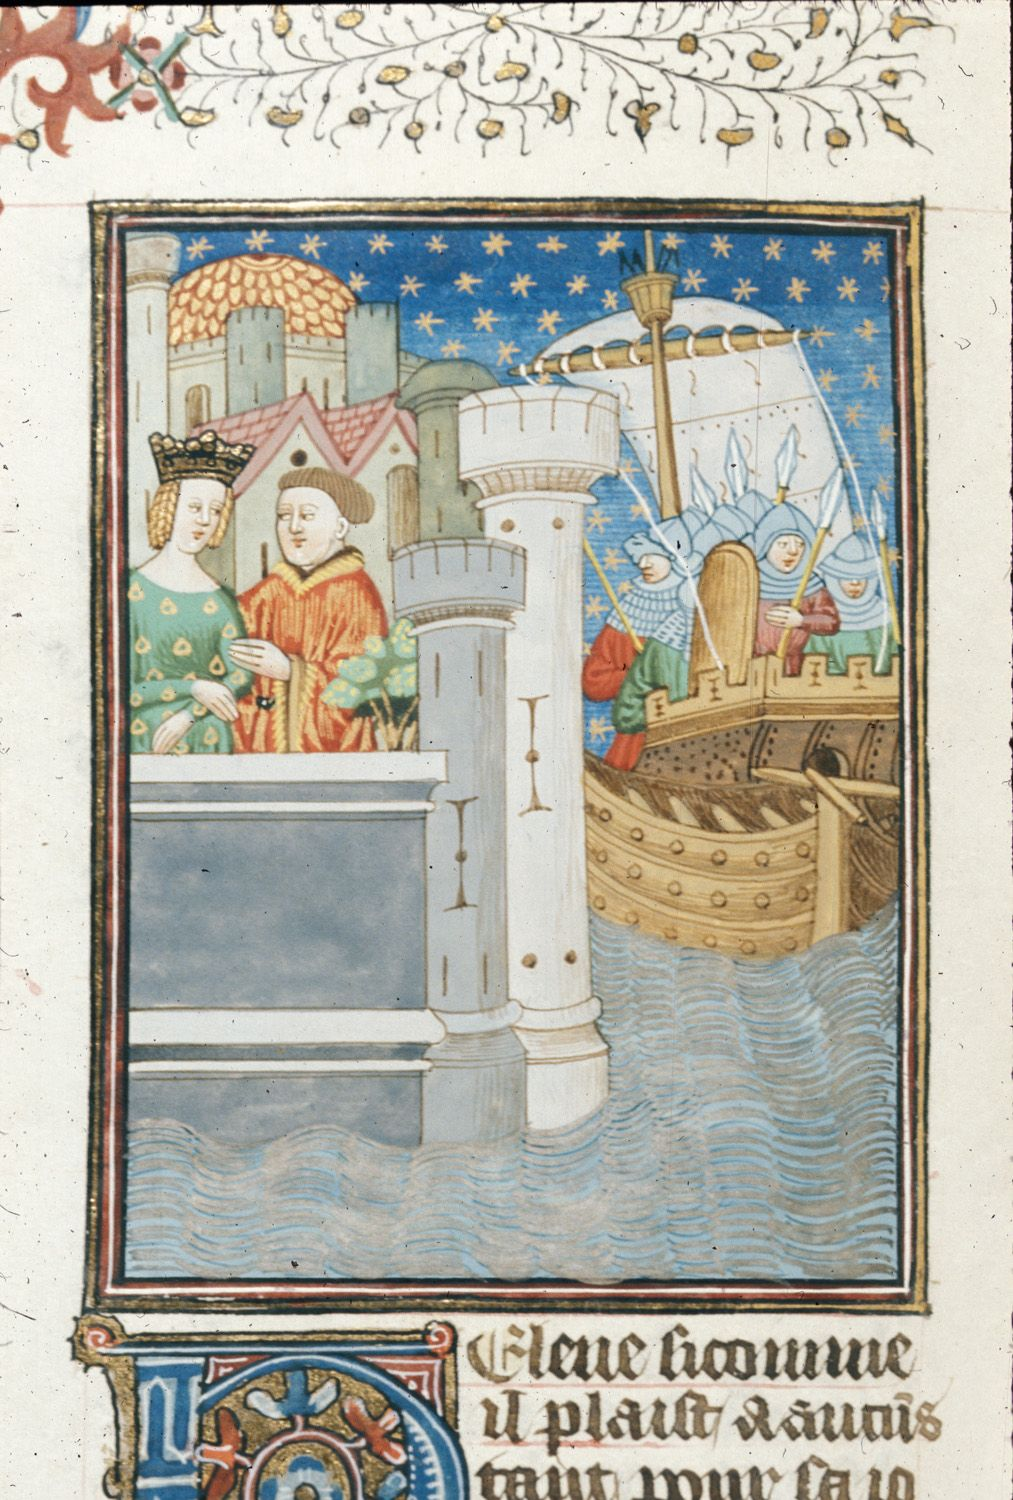 Helen and Paris in a castle, and a ship without, by the Talbot Master. From Boccacio, de mulieribus claris/Le livre de femmes nobles et renomées (trad. anonyme), c. 1440, northern French (Rouen). British Library, Royal 16 G V   f. 39v